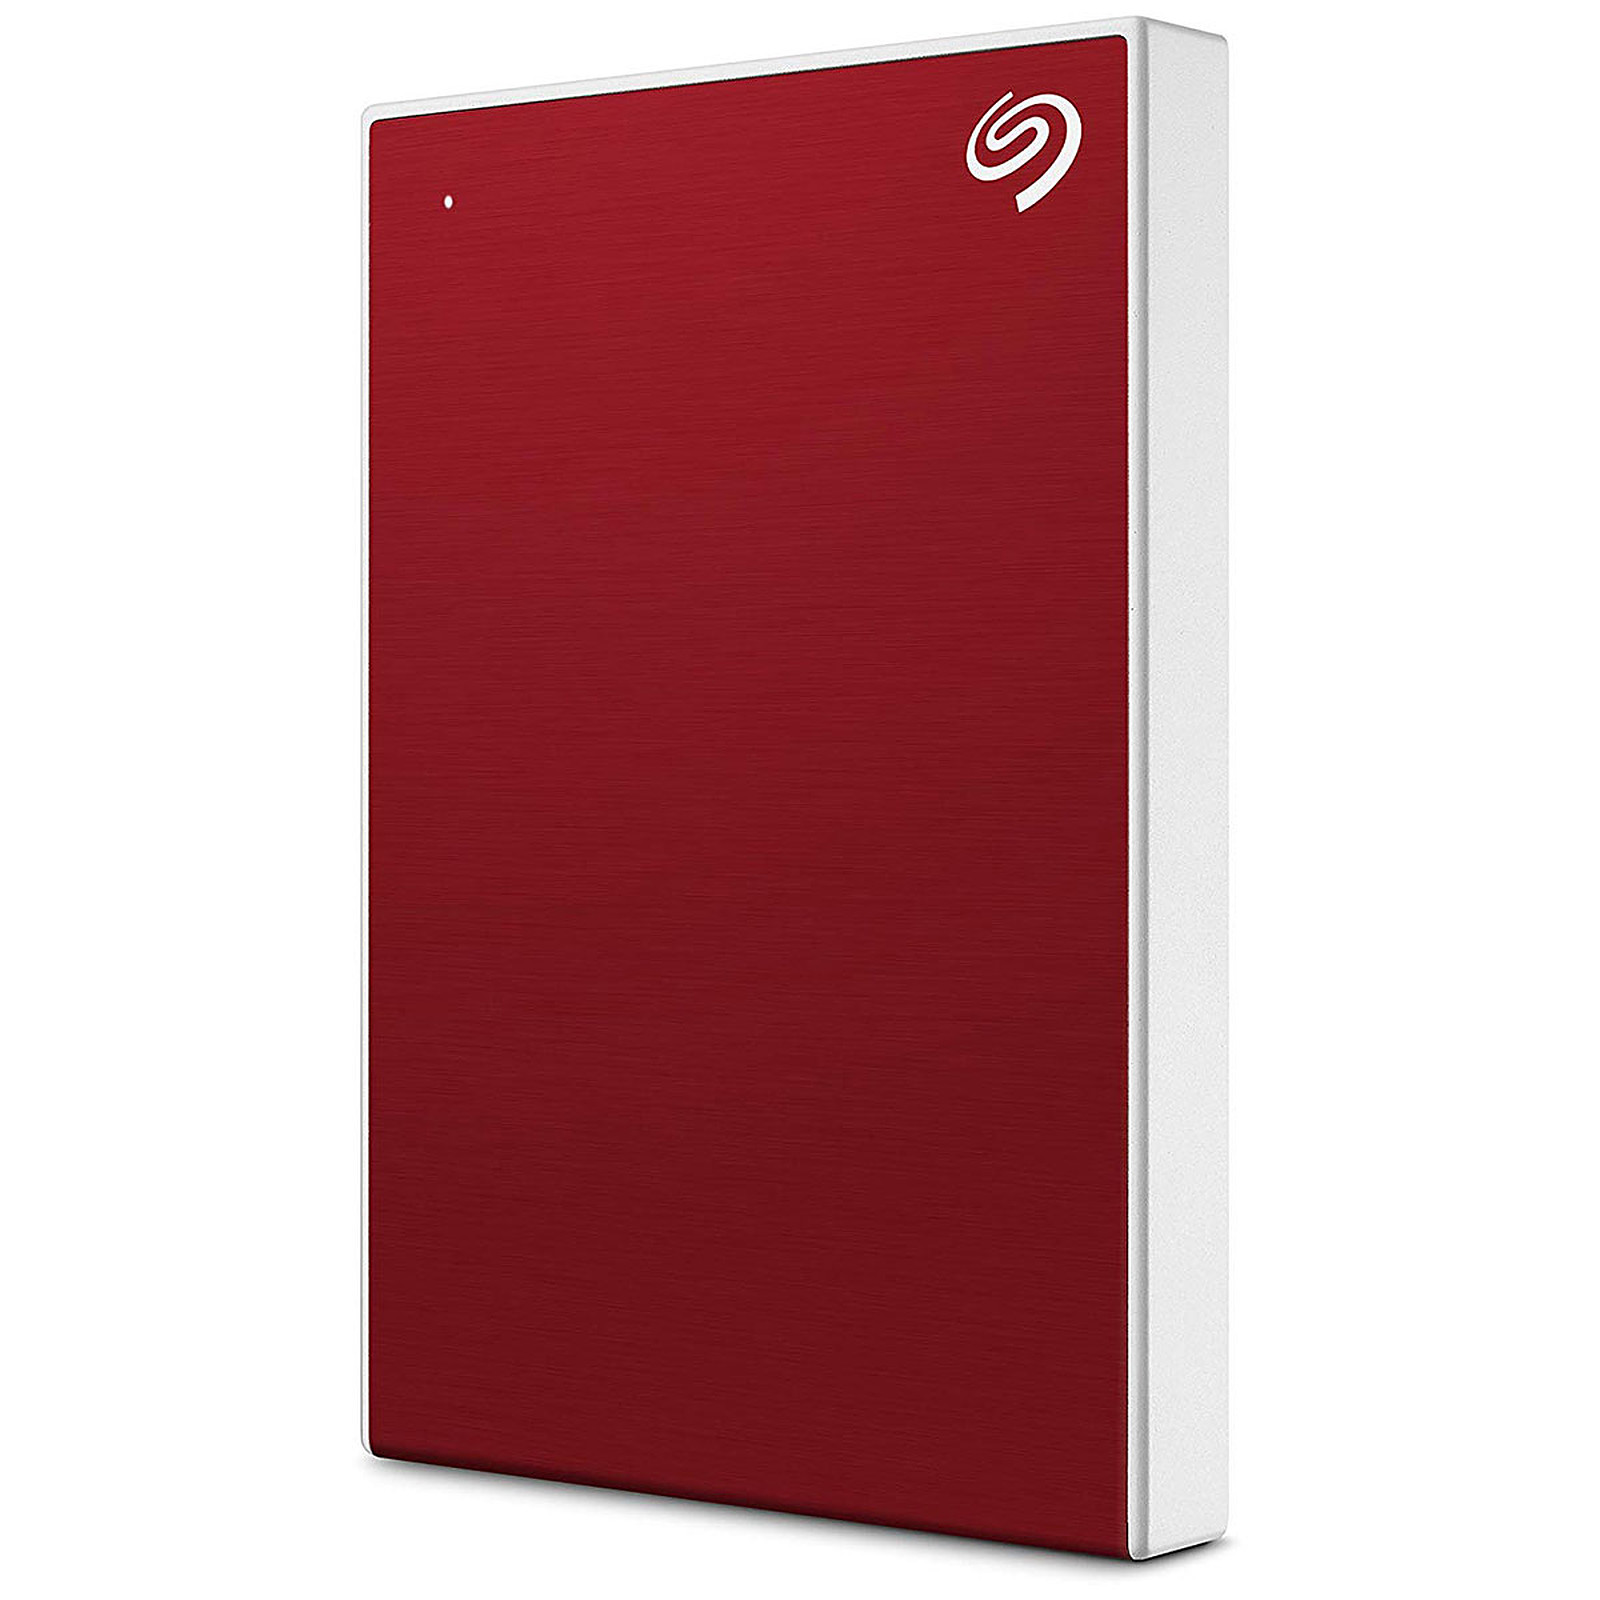 Seagate Backup Plus Slim 1 To Rouge (USB 3.0)